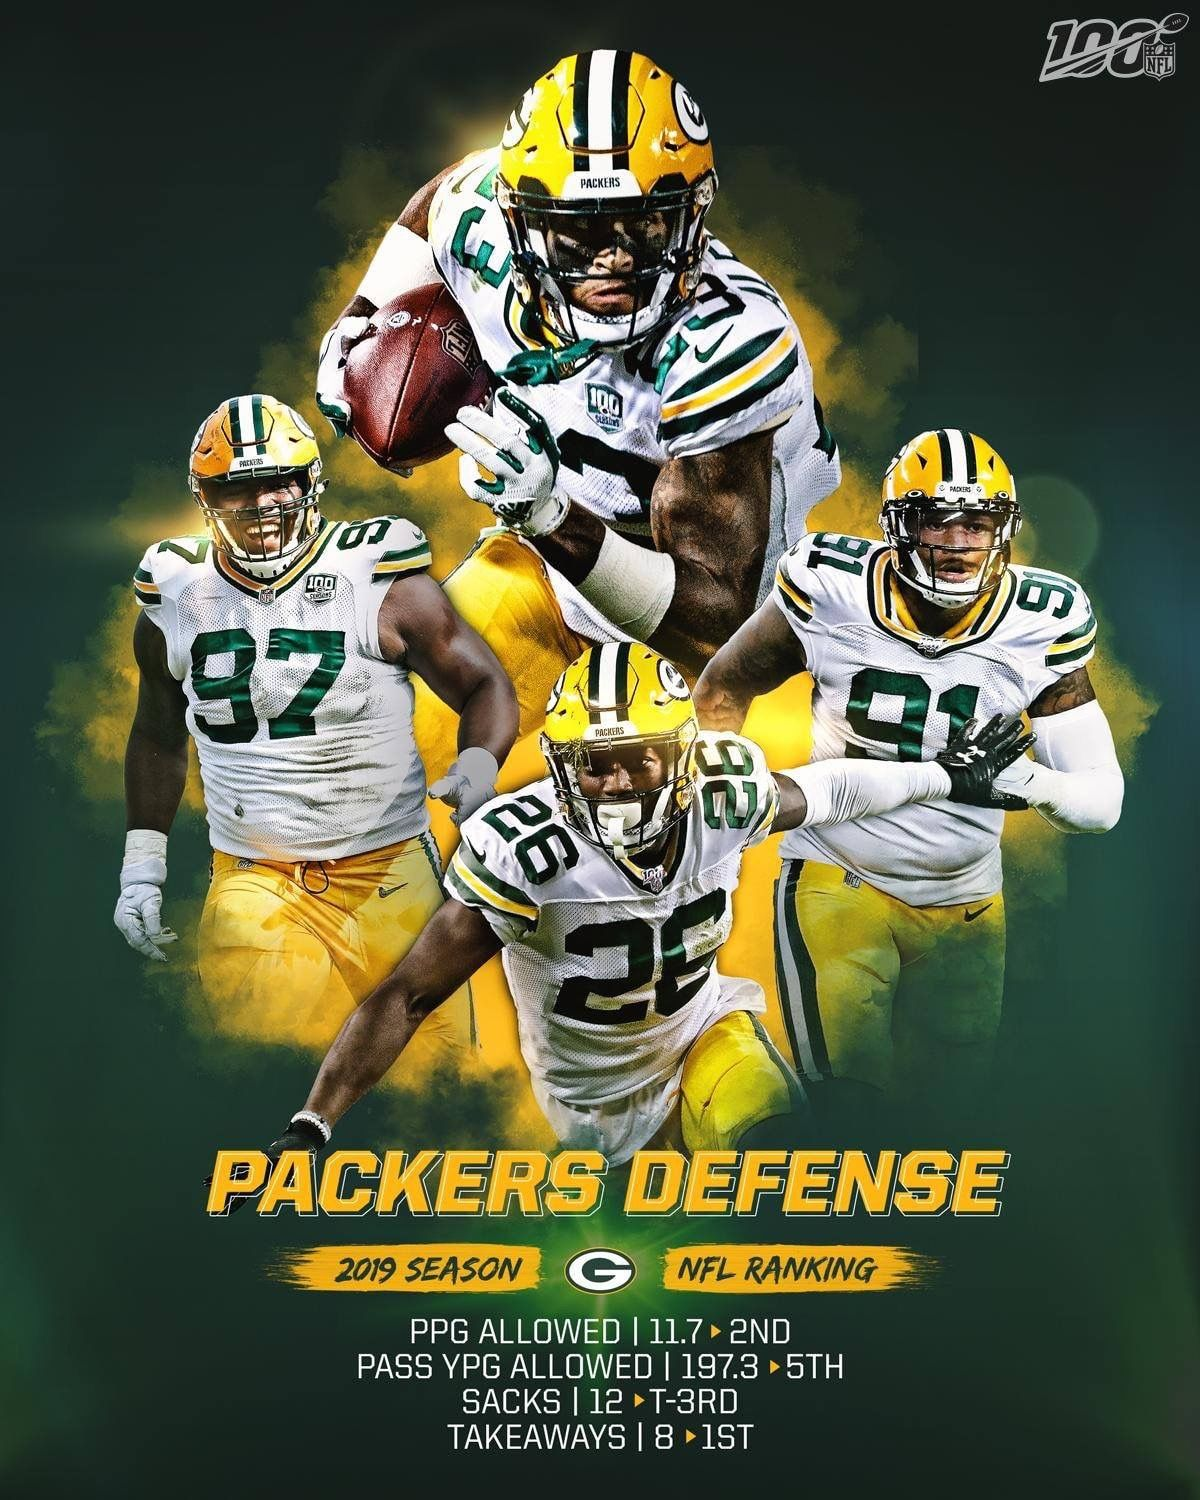 Pin By Debbie Lee On Green Bay Packers Nfl Packers Packers Green Bay Packers Logo